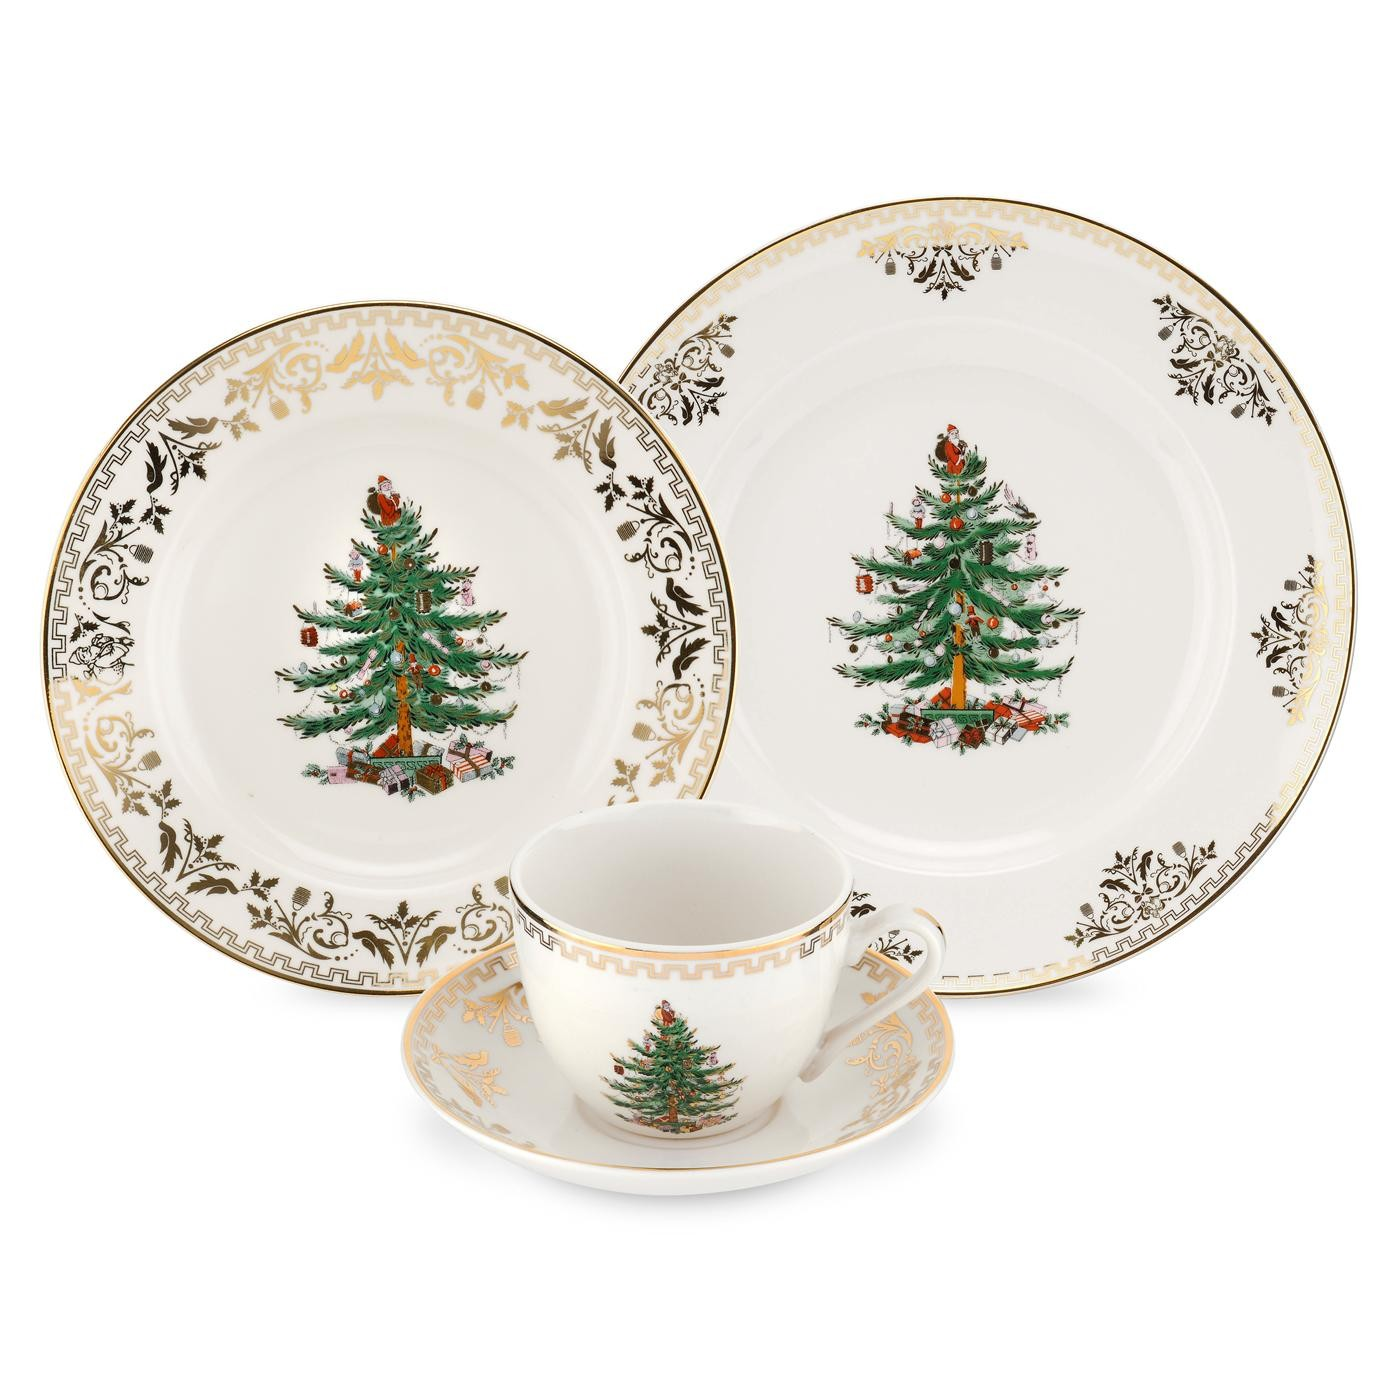 Spode Christmas Tree Gold 4 Piece Place Setting  sc 1 st  Distinctive Decor & Spode Christmas Tree Gold 4 Piece Place Setting $79.95 You Save $80.05